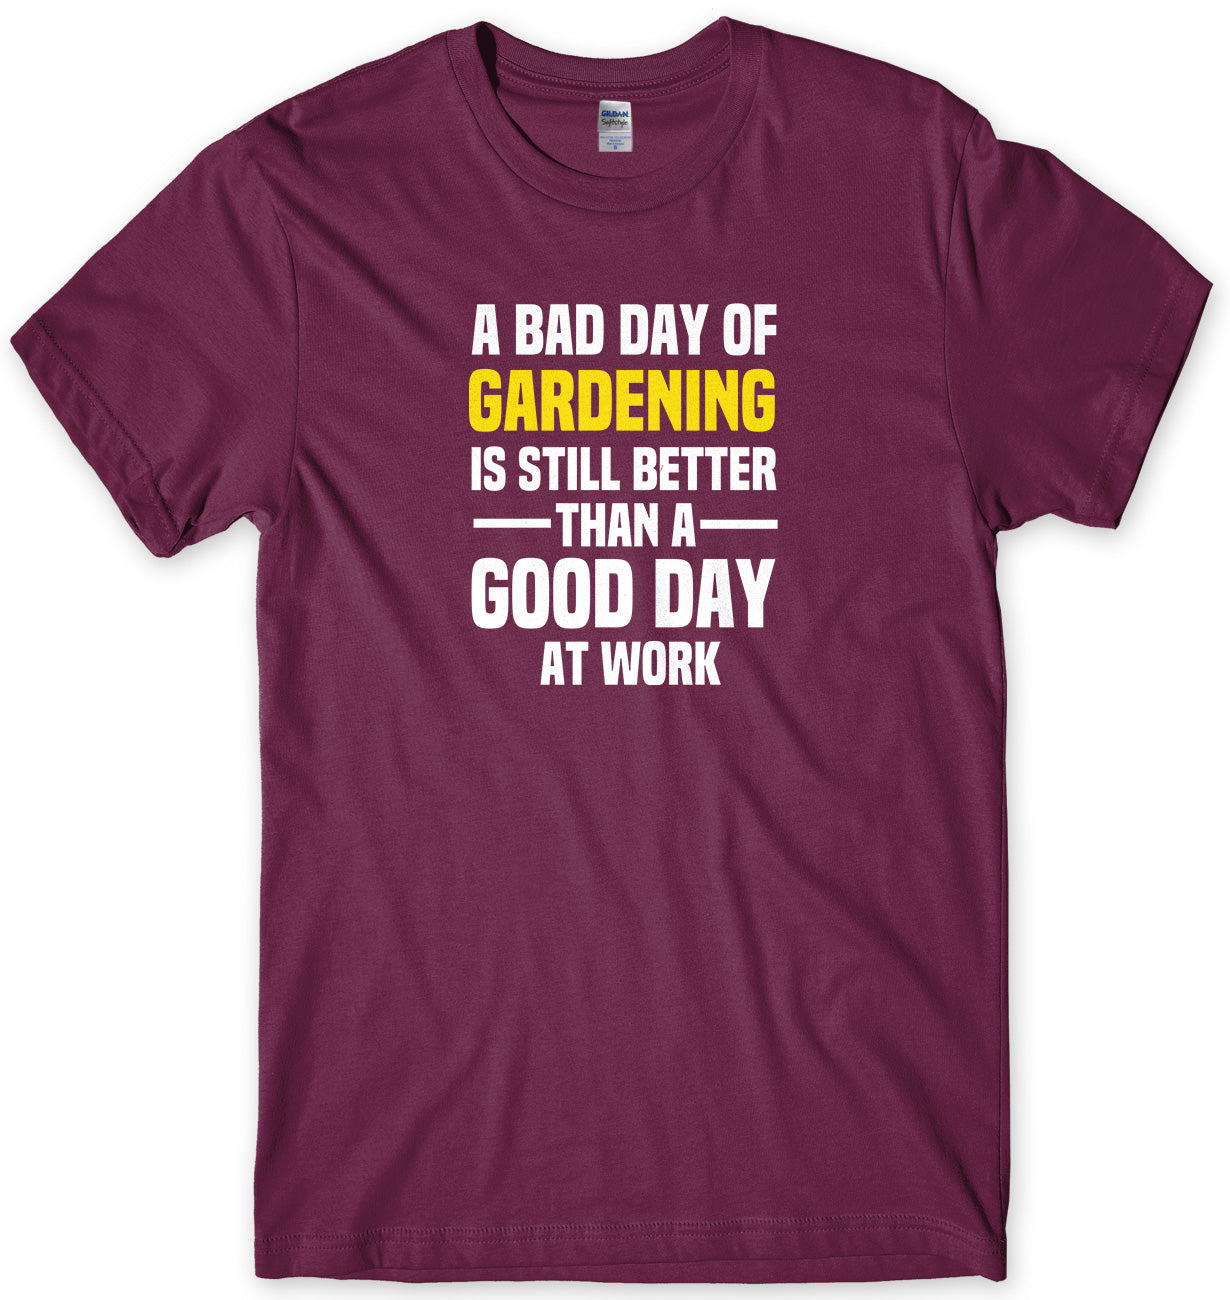 A BAD DAY OF GARDENING IS STILL BETTER THAN A GOOD DAY AT WORK MENS FUNNY SLOGAN UNISEX T-SHIRT - StreetSide Surgeons